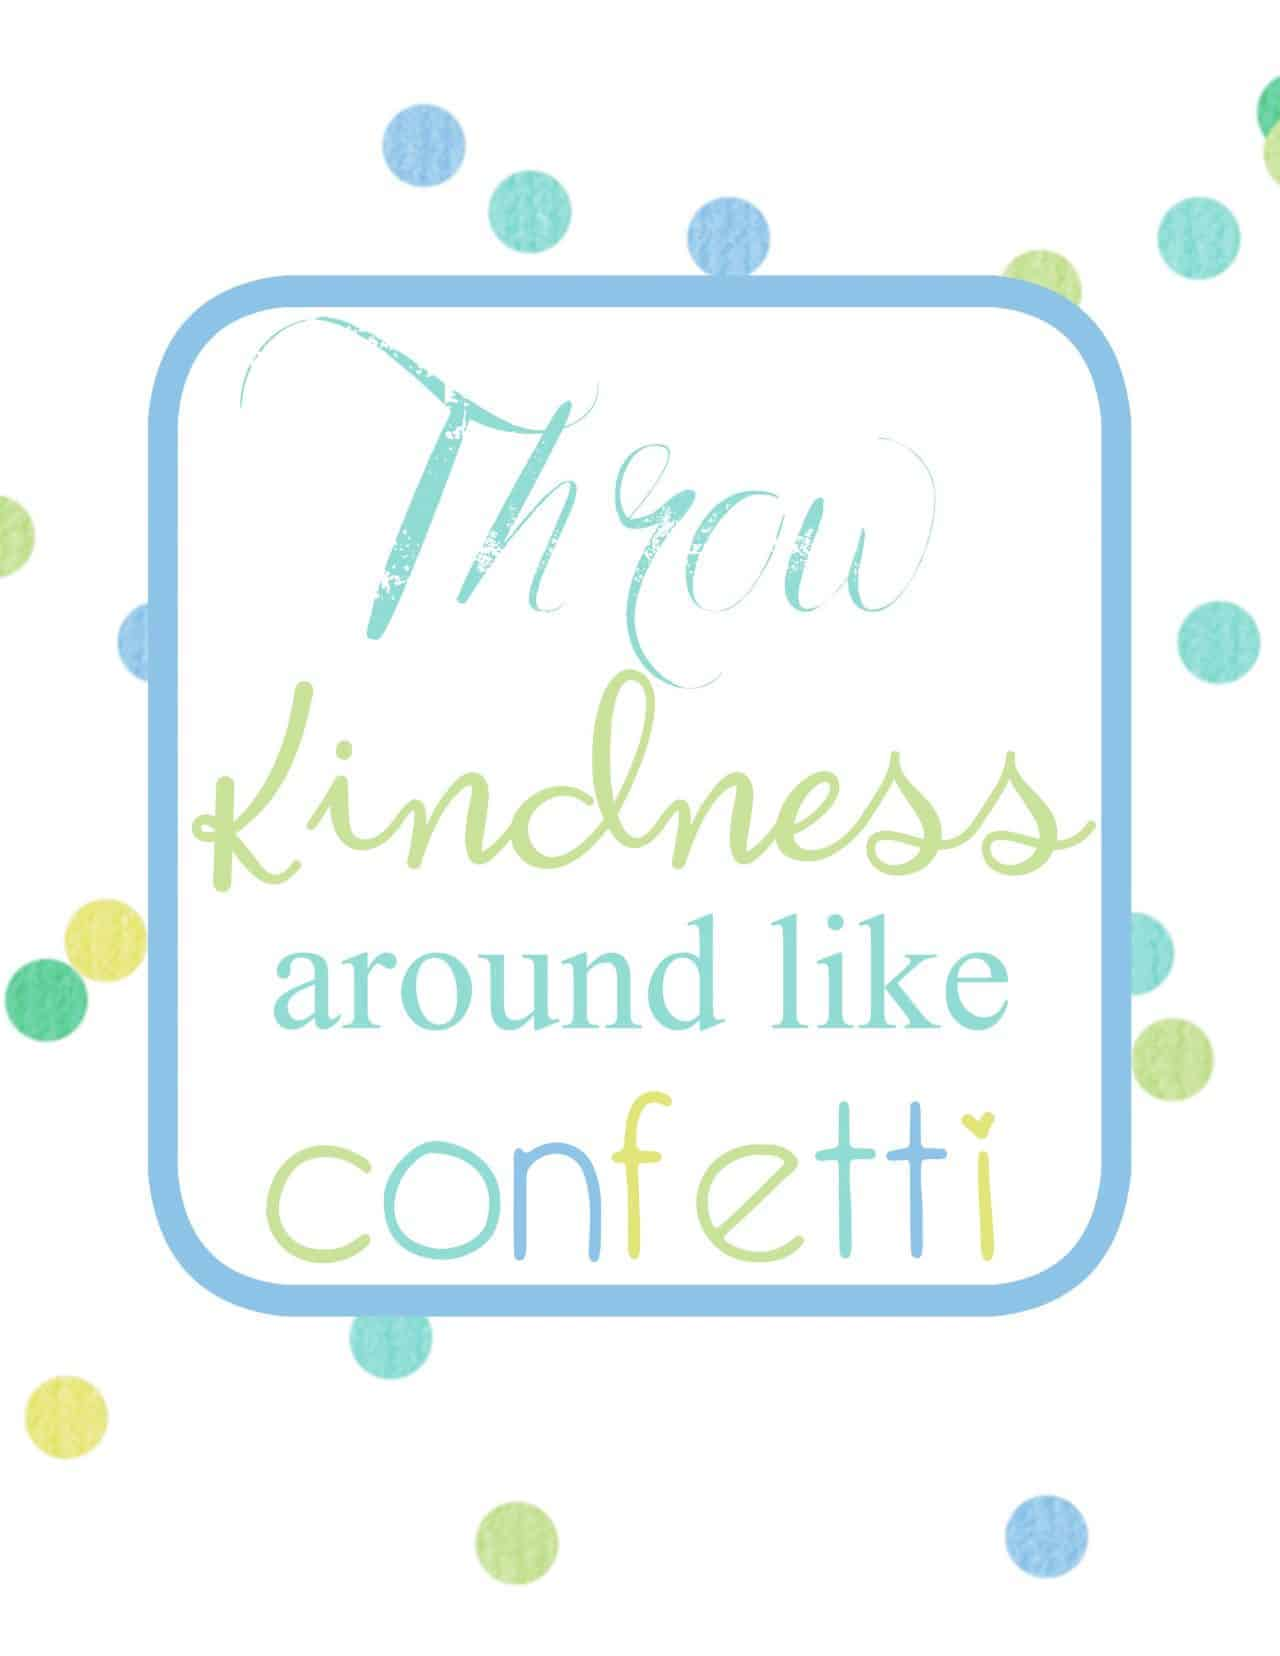 Throw kindness around like confetti blue and green lettering with blue and green confetti background with phrase outlined in blue - free printable